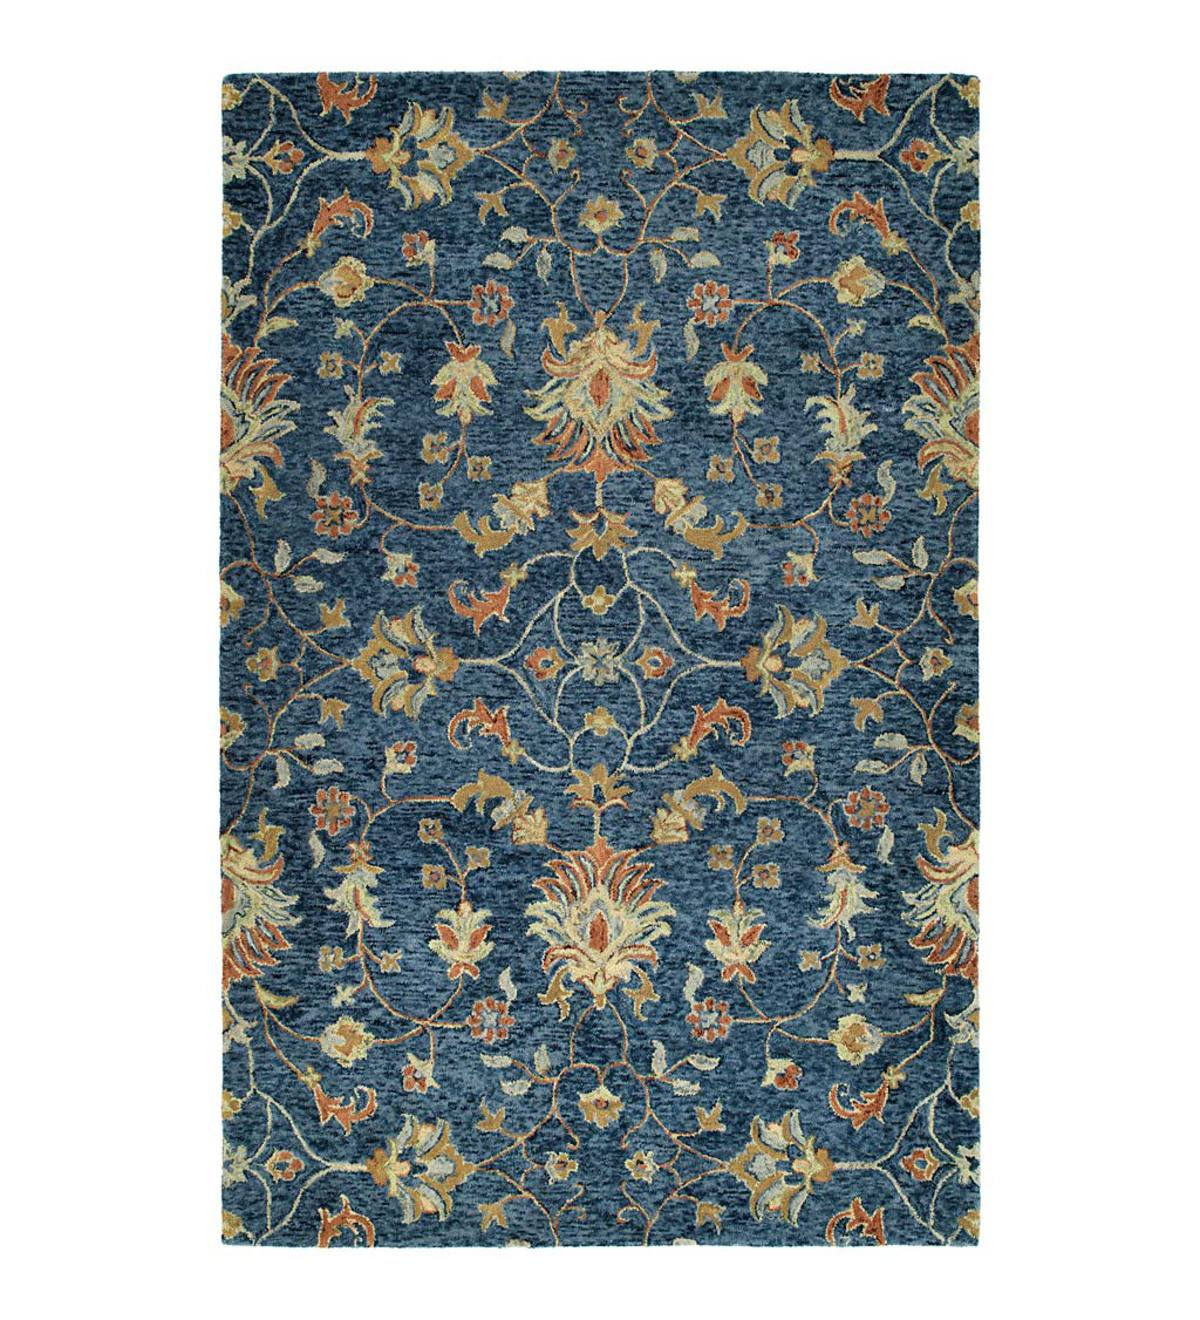 Carmona Denim Wool Rug, 9' x 12'